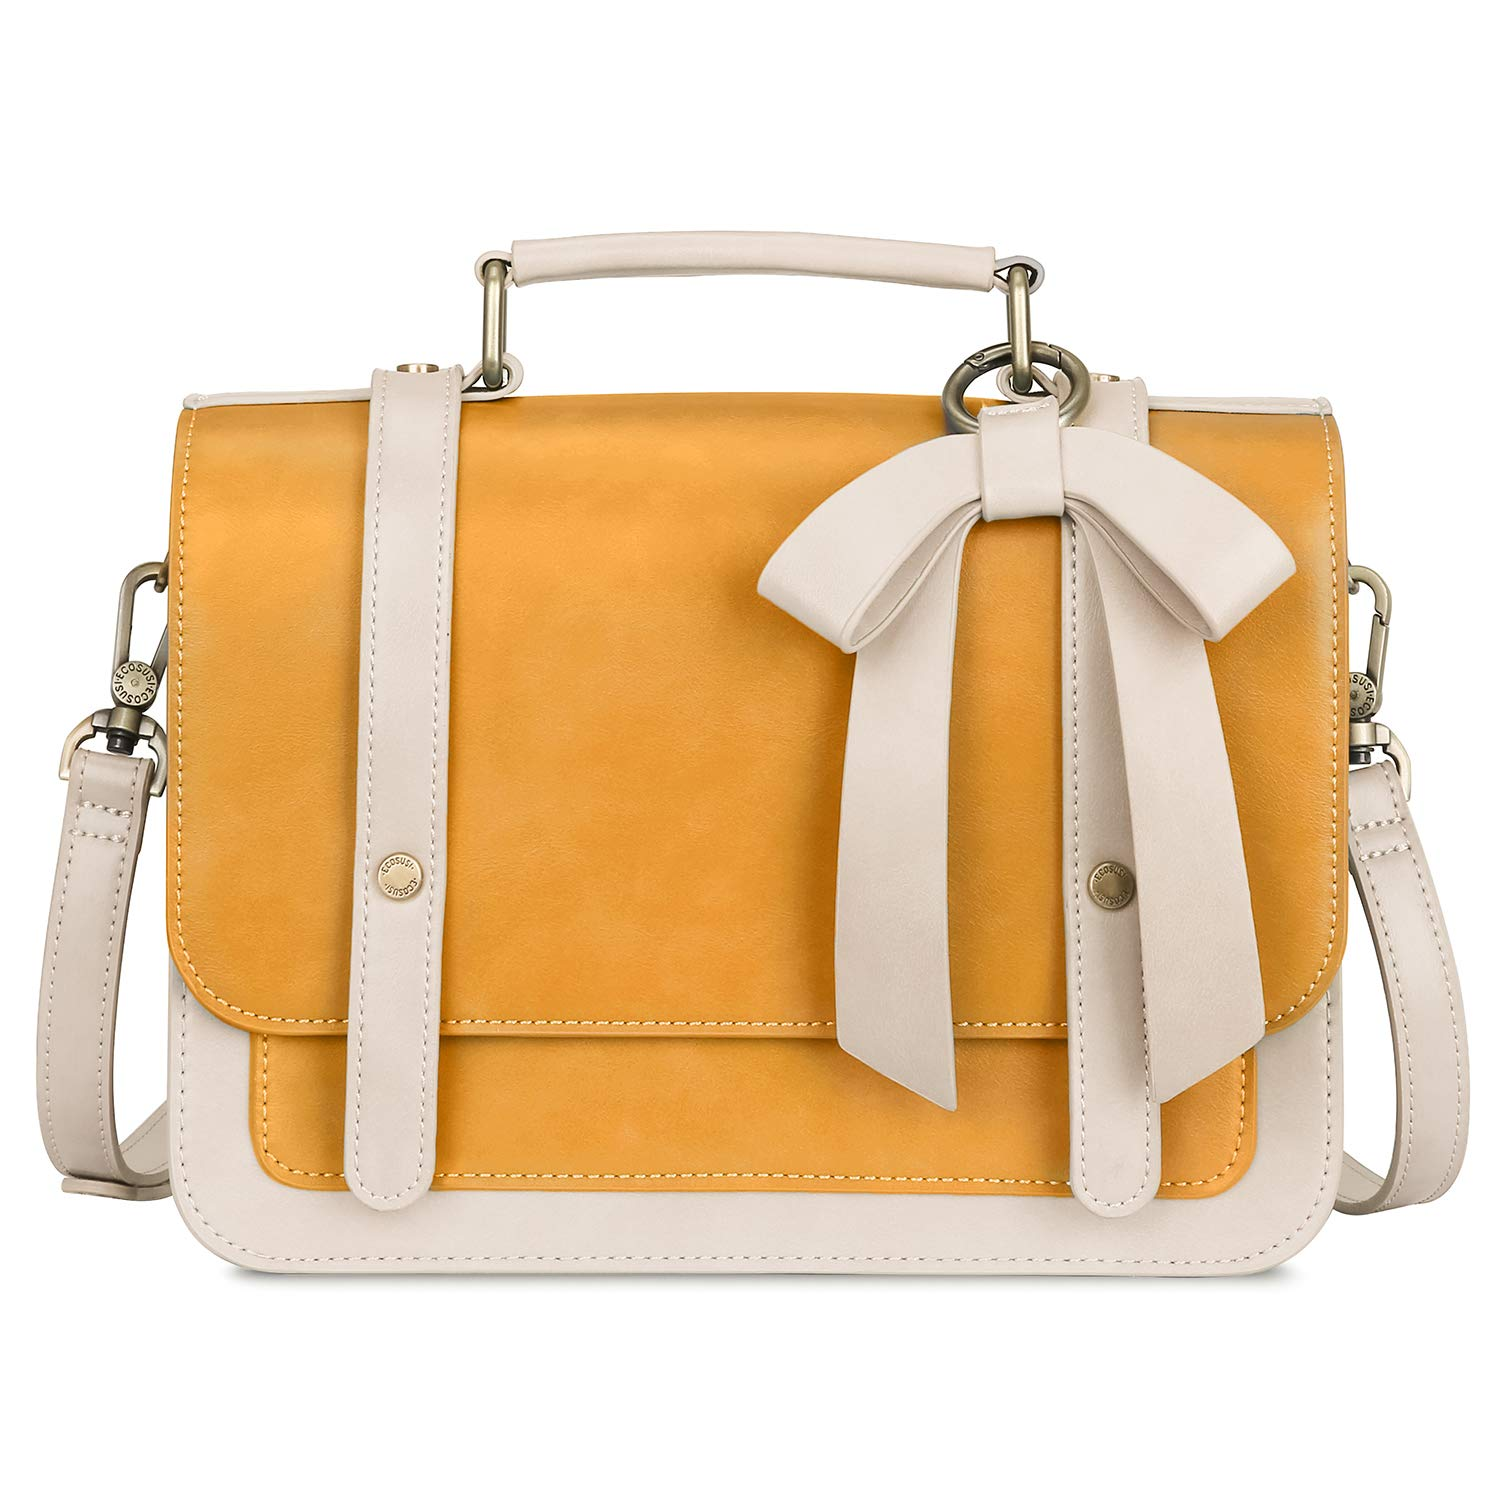 ECOSUSI Women's Small Vintage PU Leather Crossbody Satchel Bag with Detachable Bow, Yellow